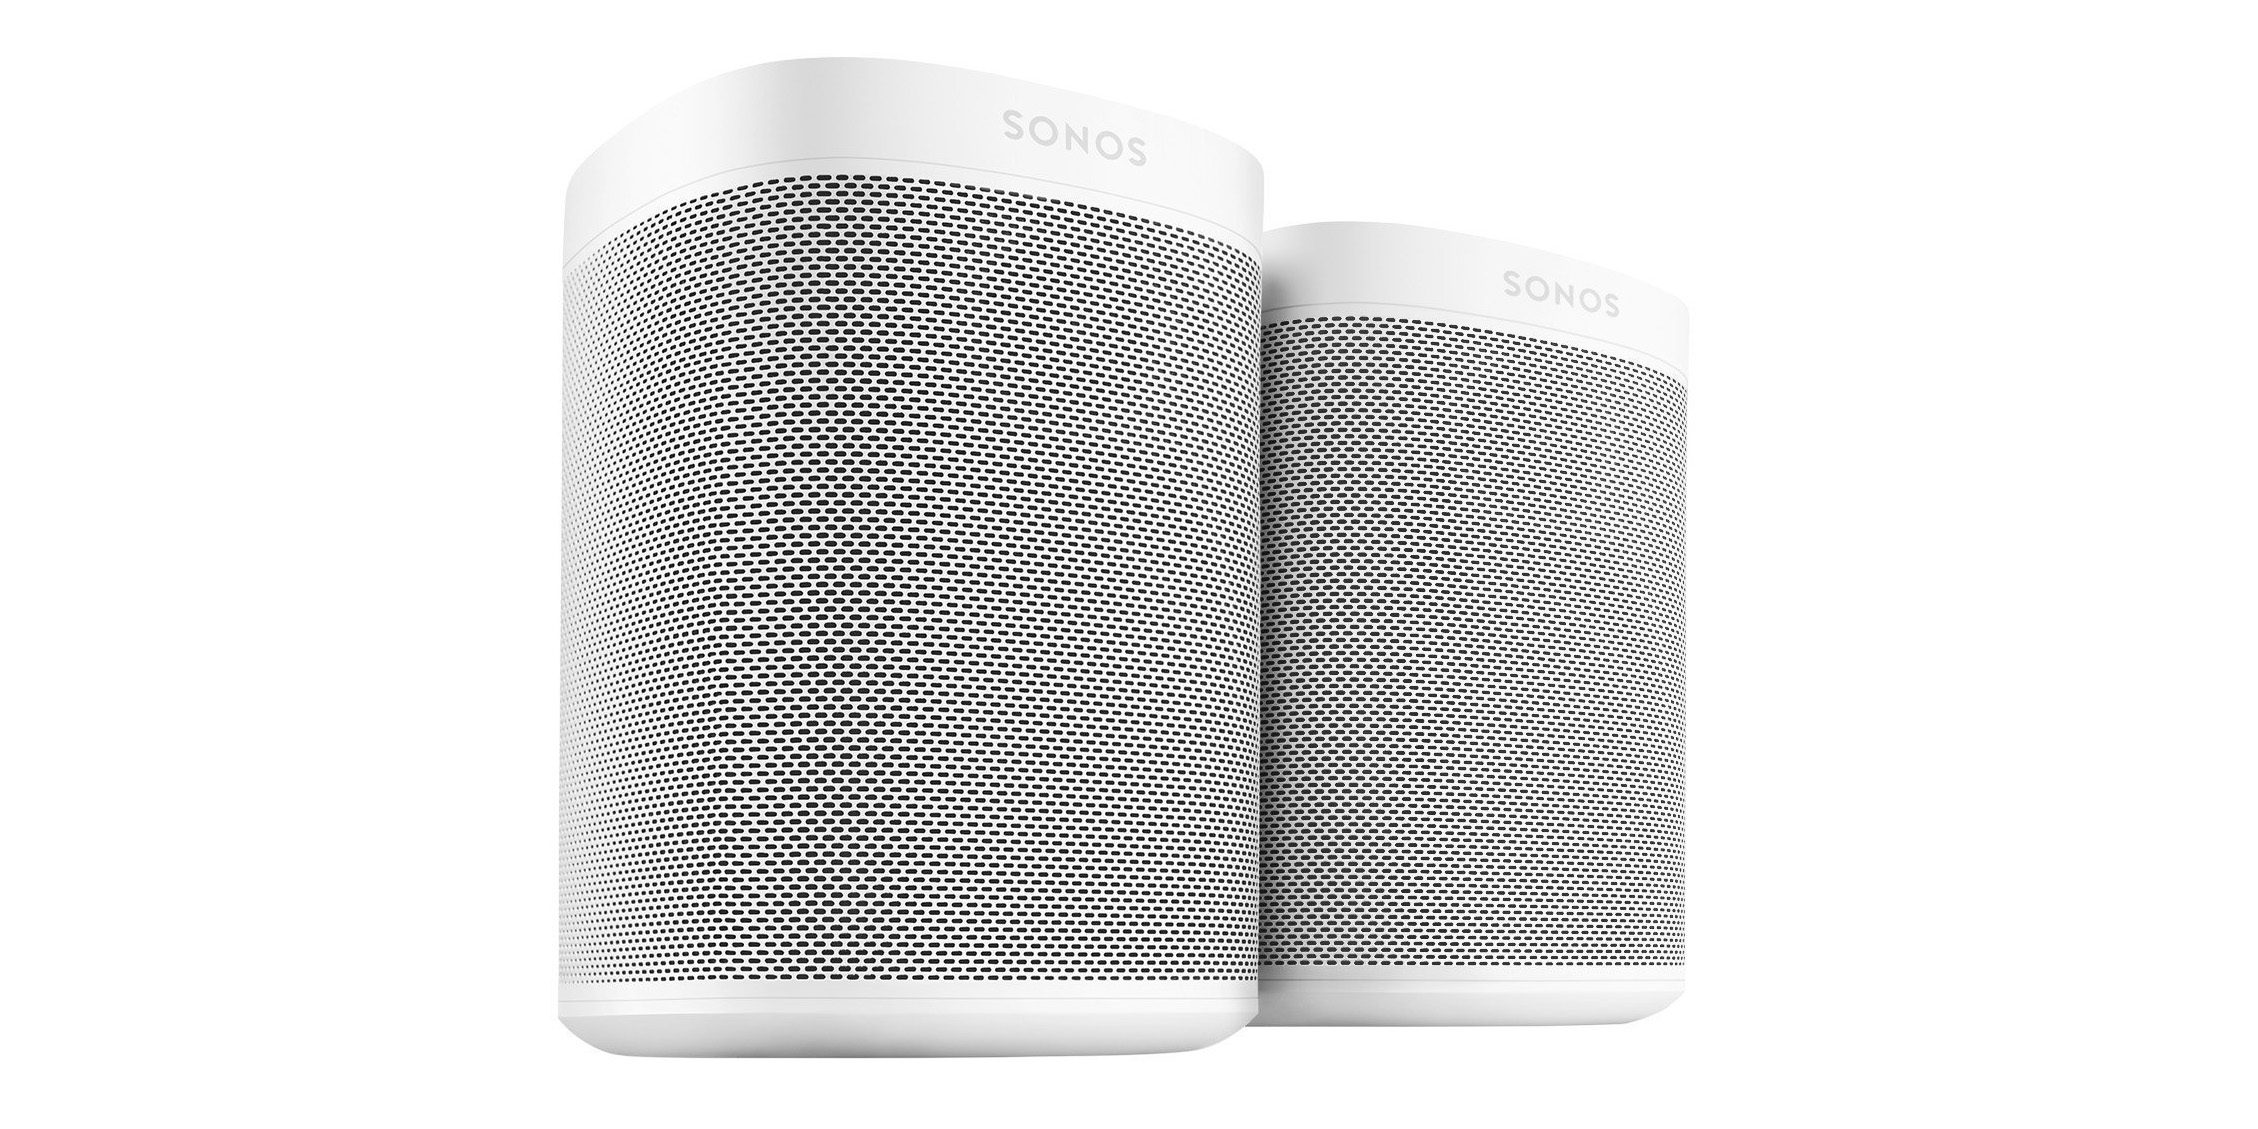 Sonos speakers will add Google Assistant before the end of 2018